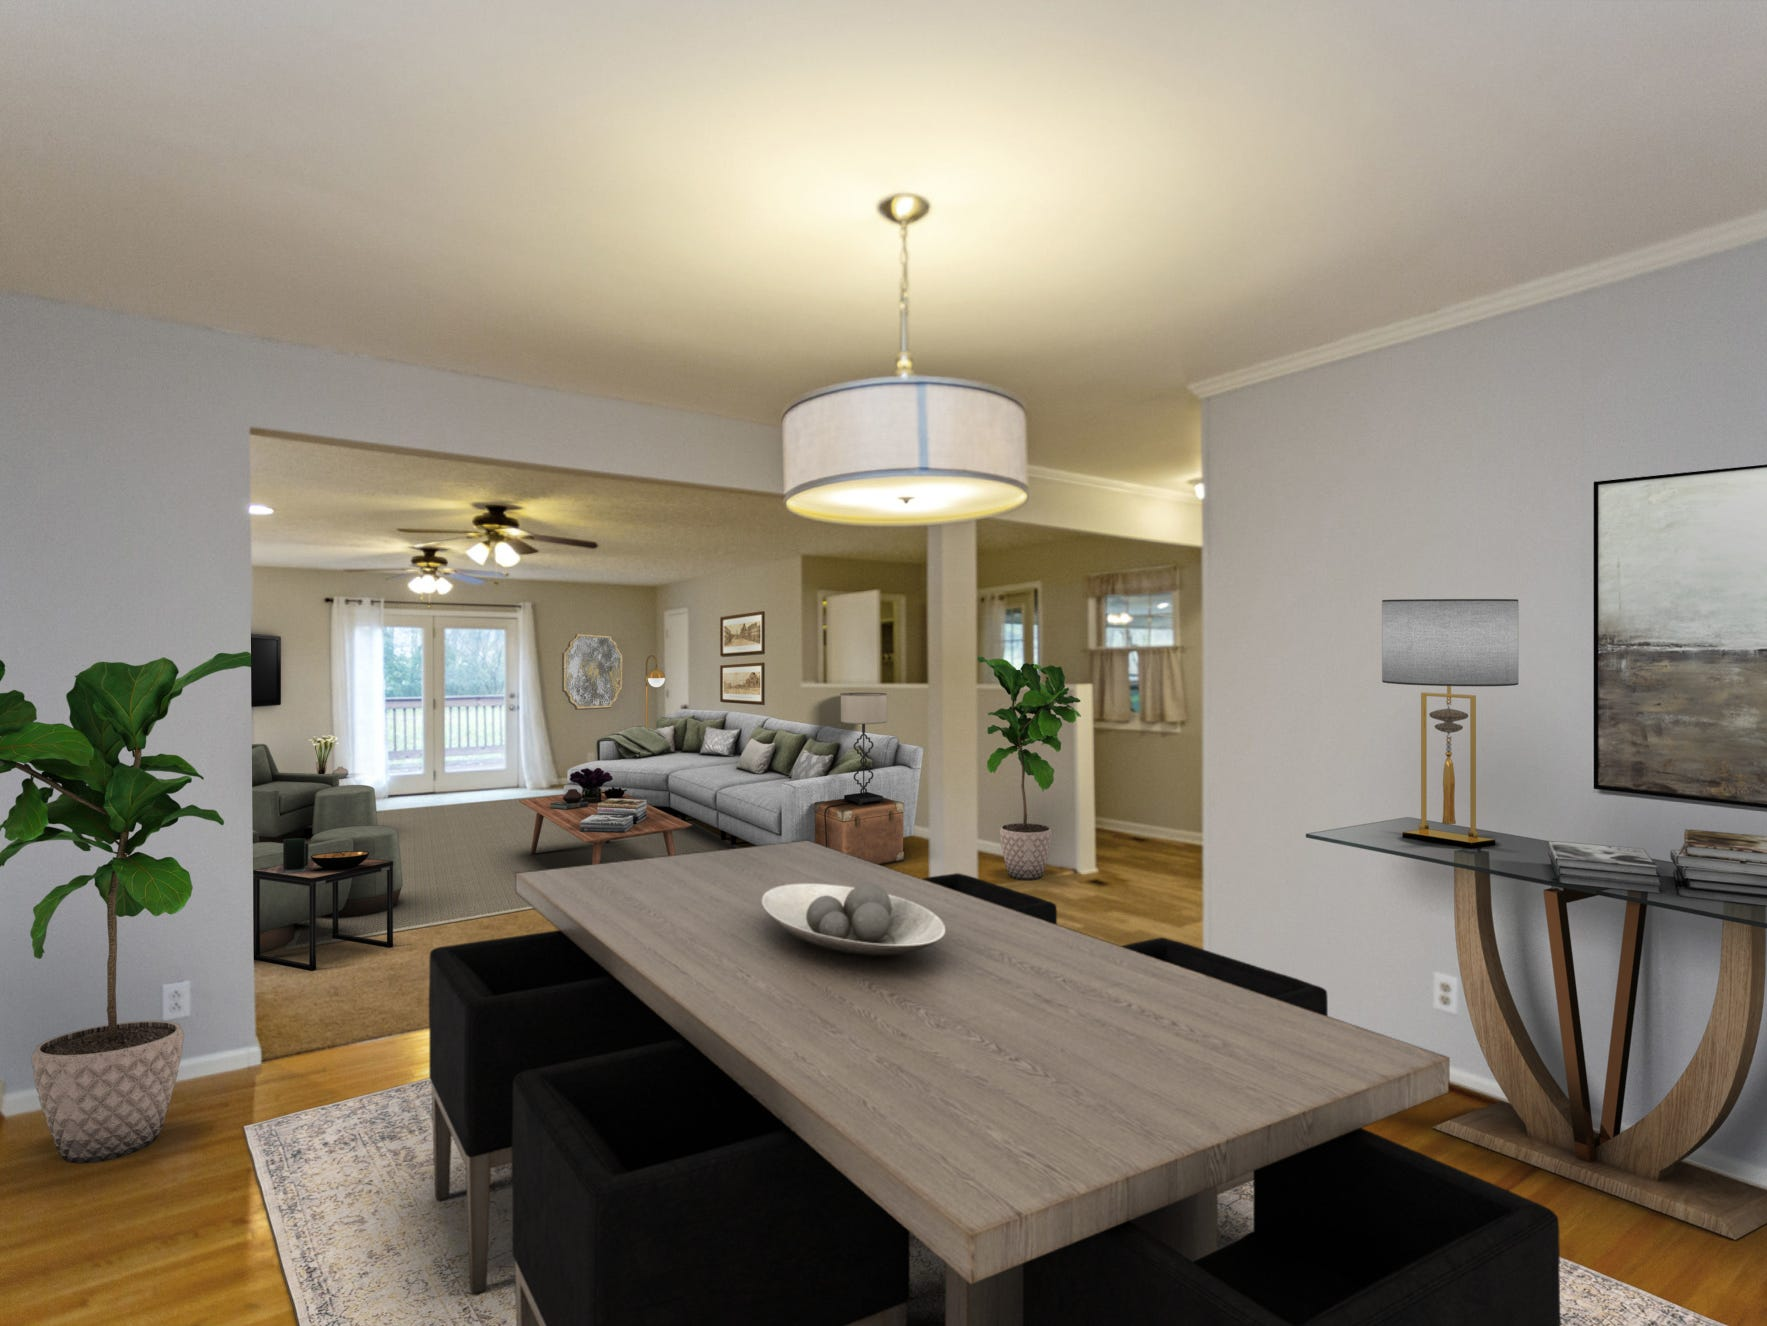 This photo shows the home's dining and living space after virtual staging software was used to furnish the room. This gives home buyers a look at the room with furnishings in it.